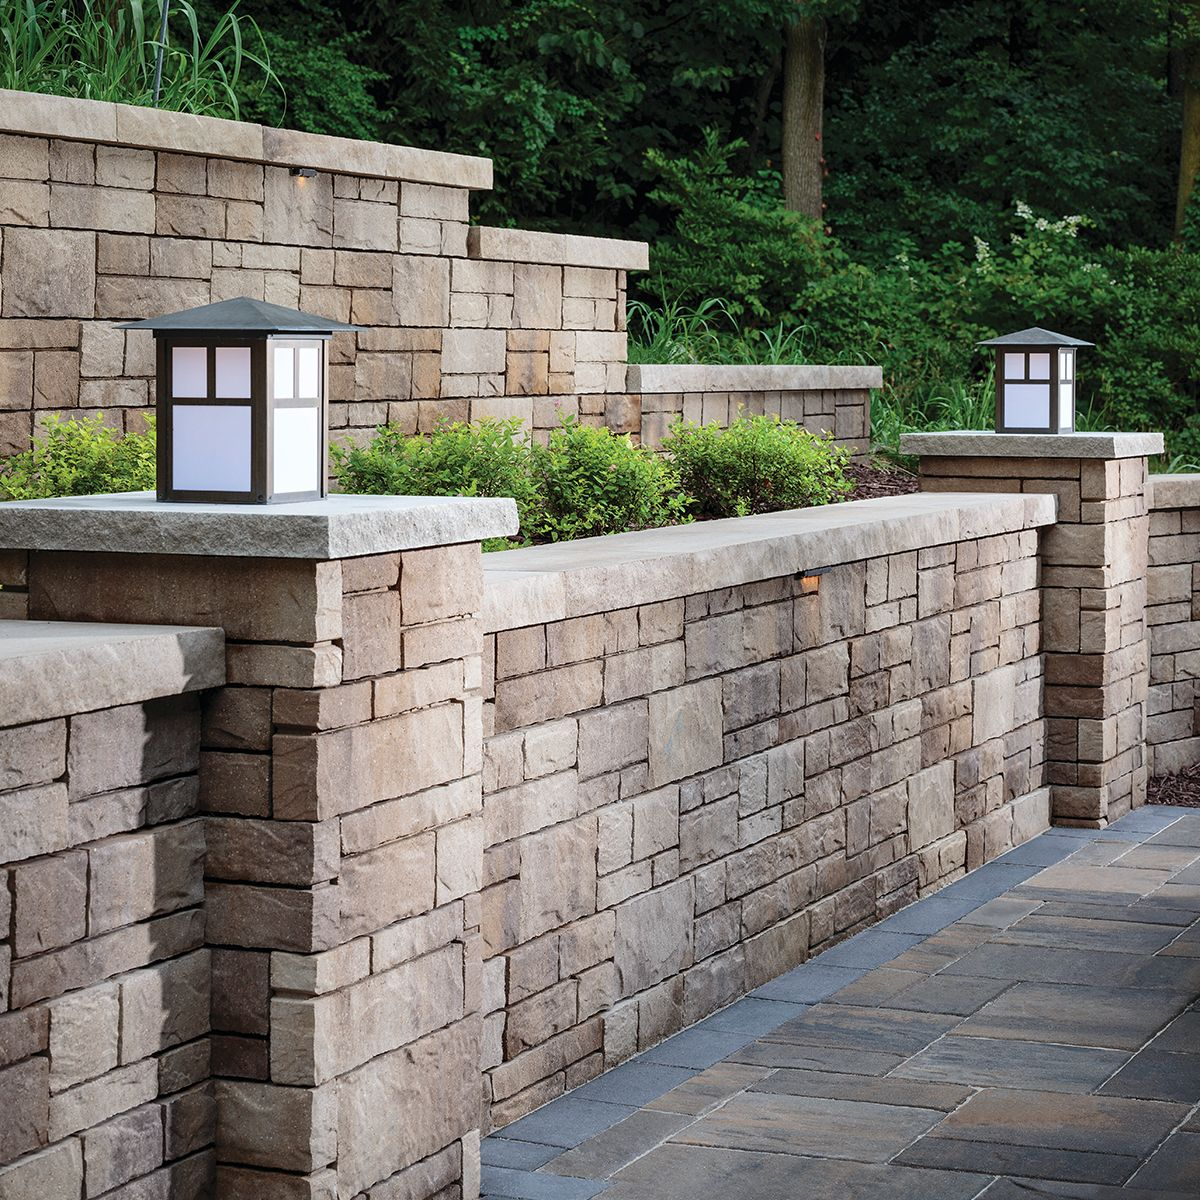 Easy Retaining Wall Ideas: Add A Eye-catching Wall That's Easy To Install With The